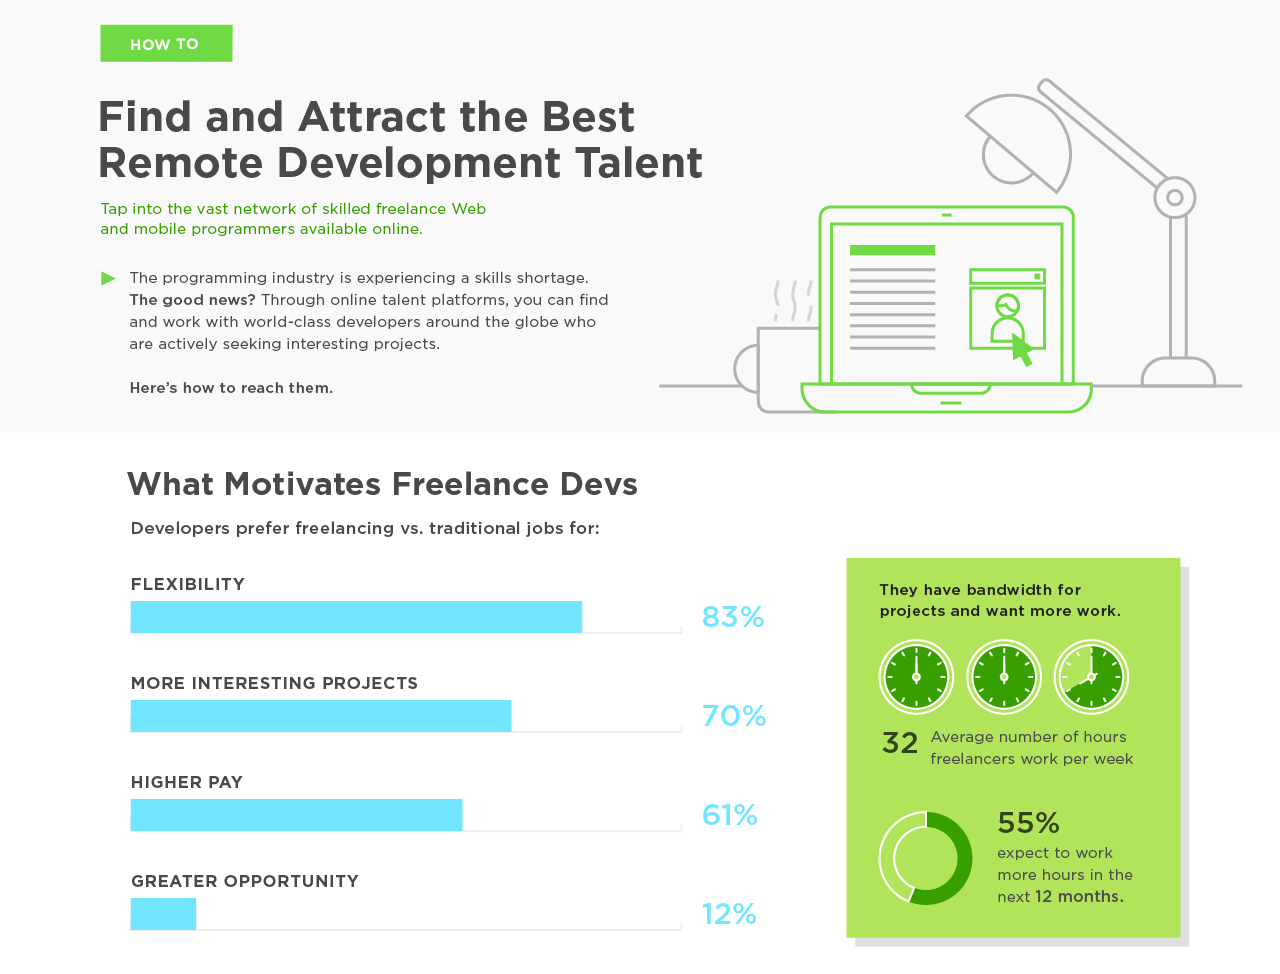 An infographic by Upwork on attracting remote talent